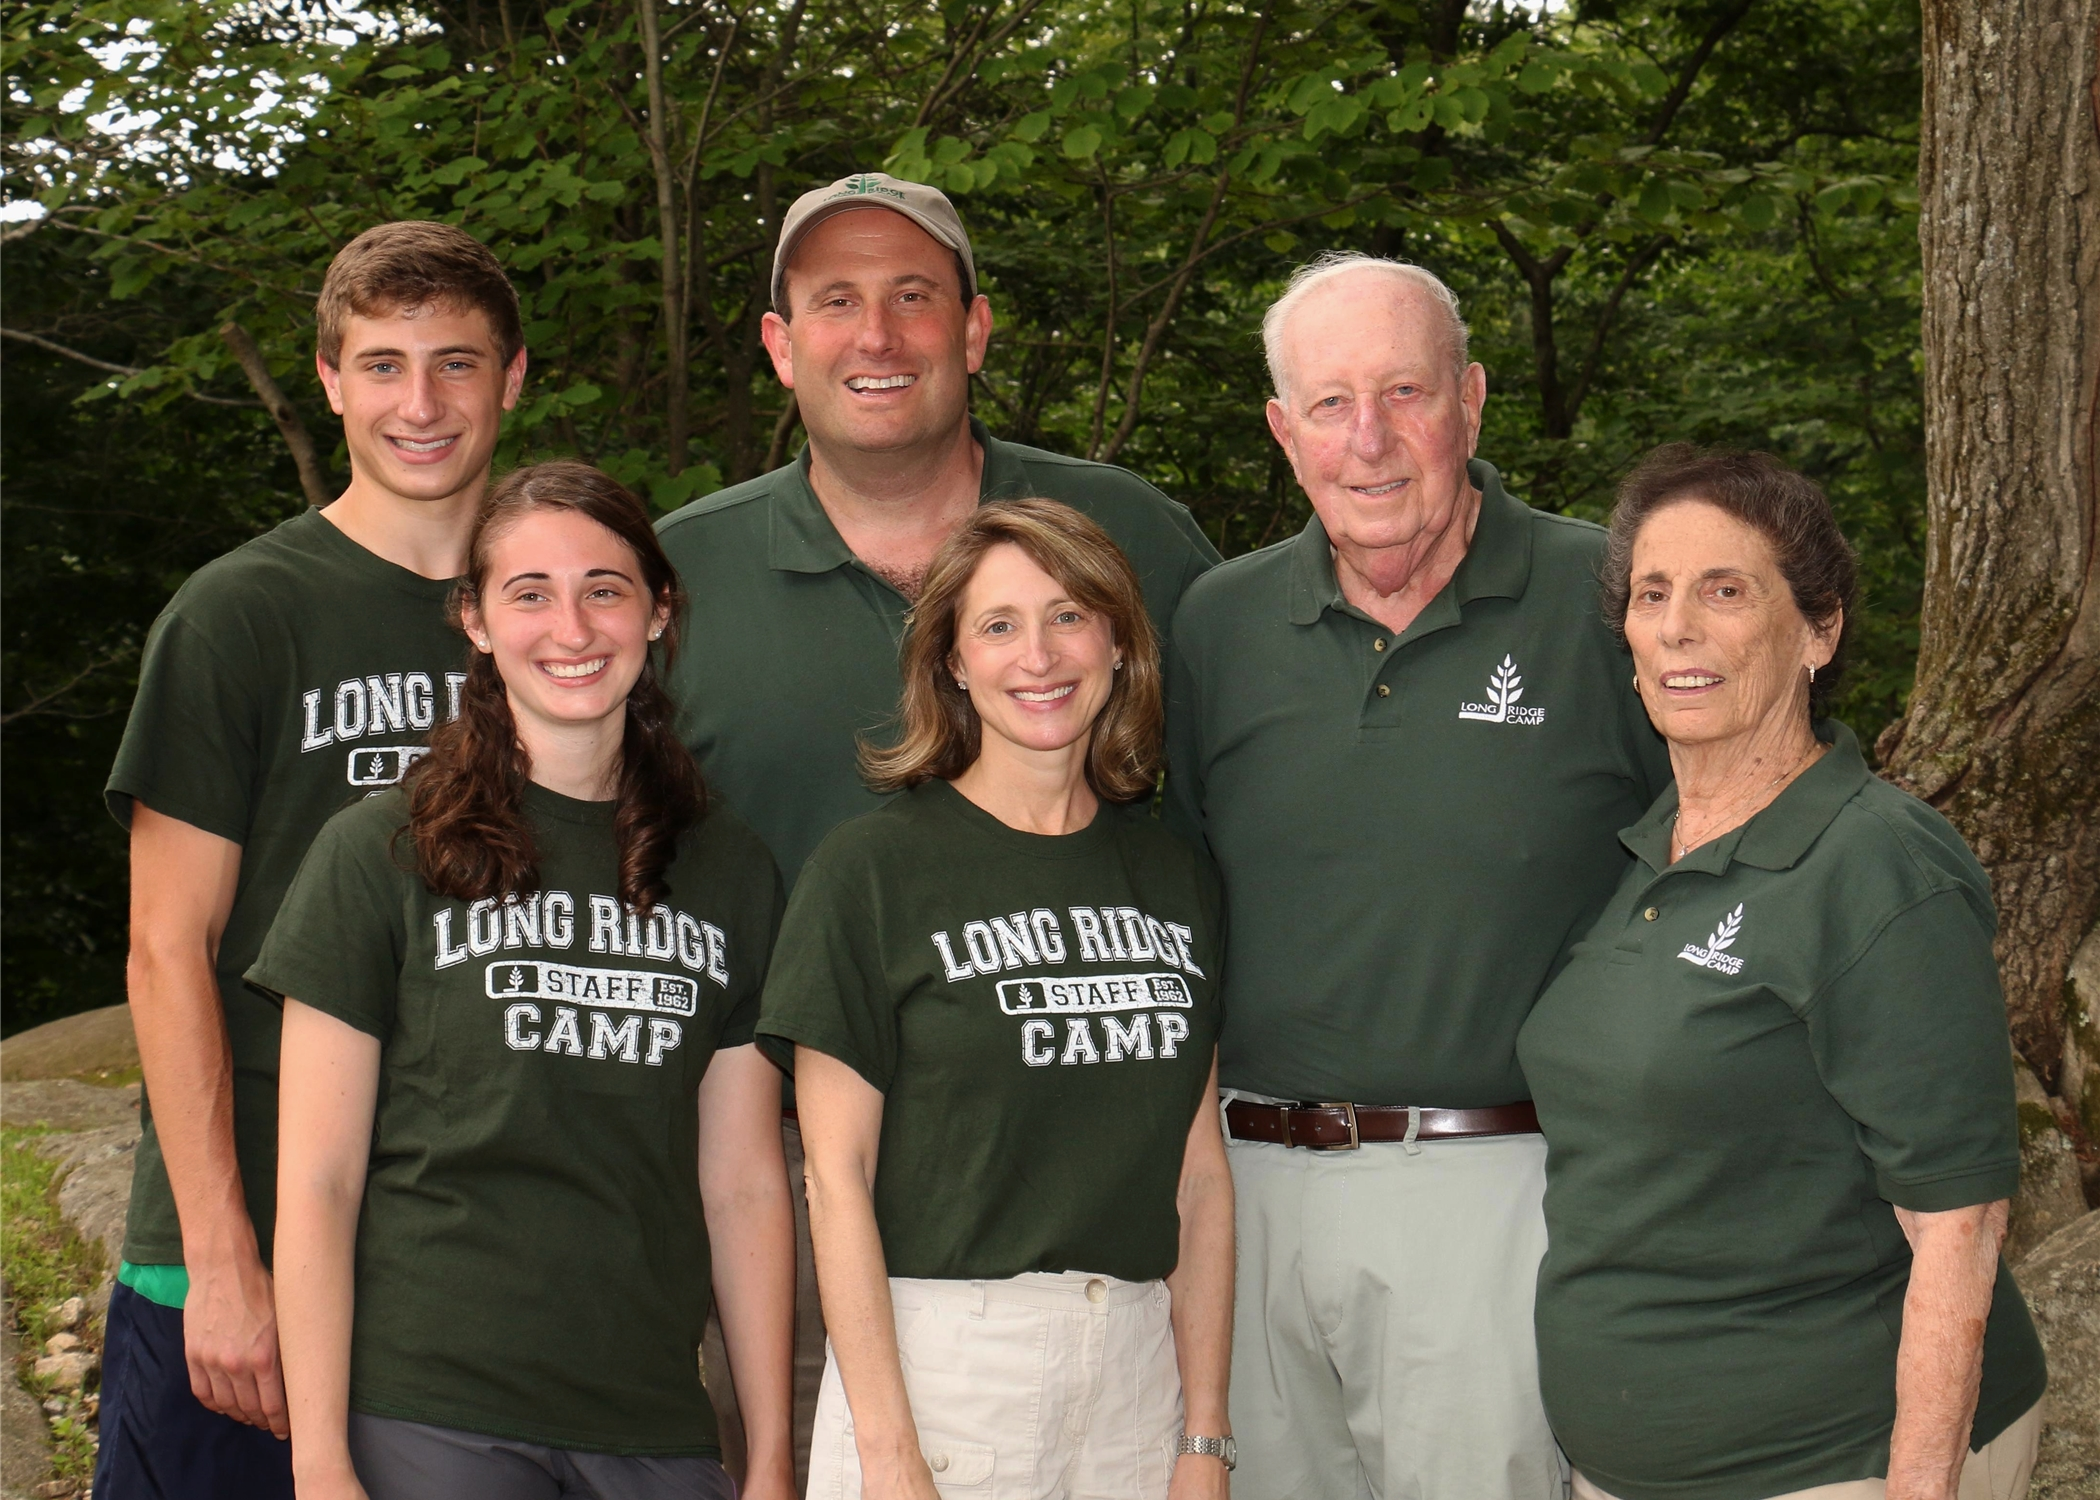 The Alswanger Family - (from left to right) Matthew, Melanie, Geoff, Gayle, Herm and Myrna